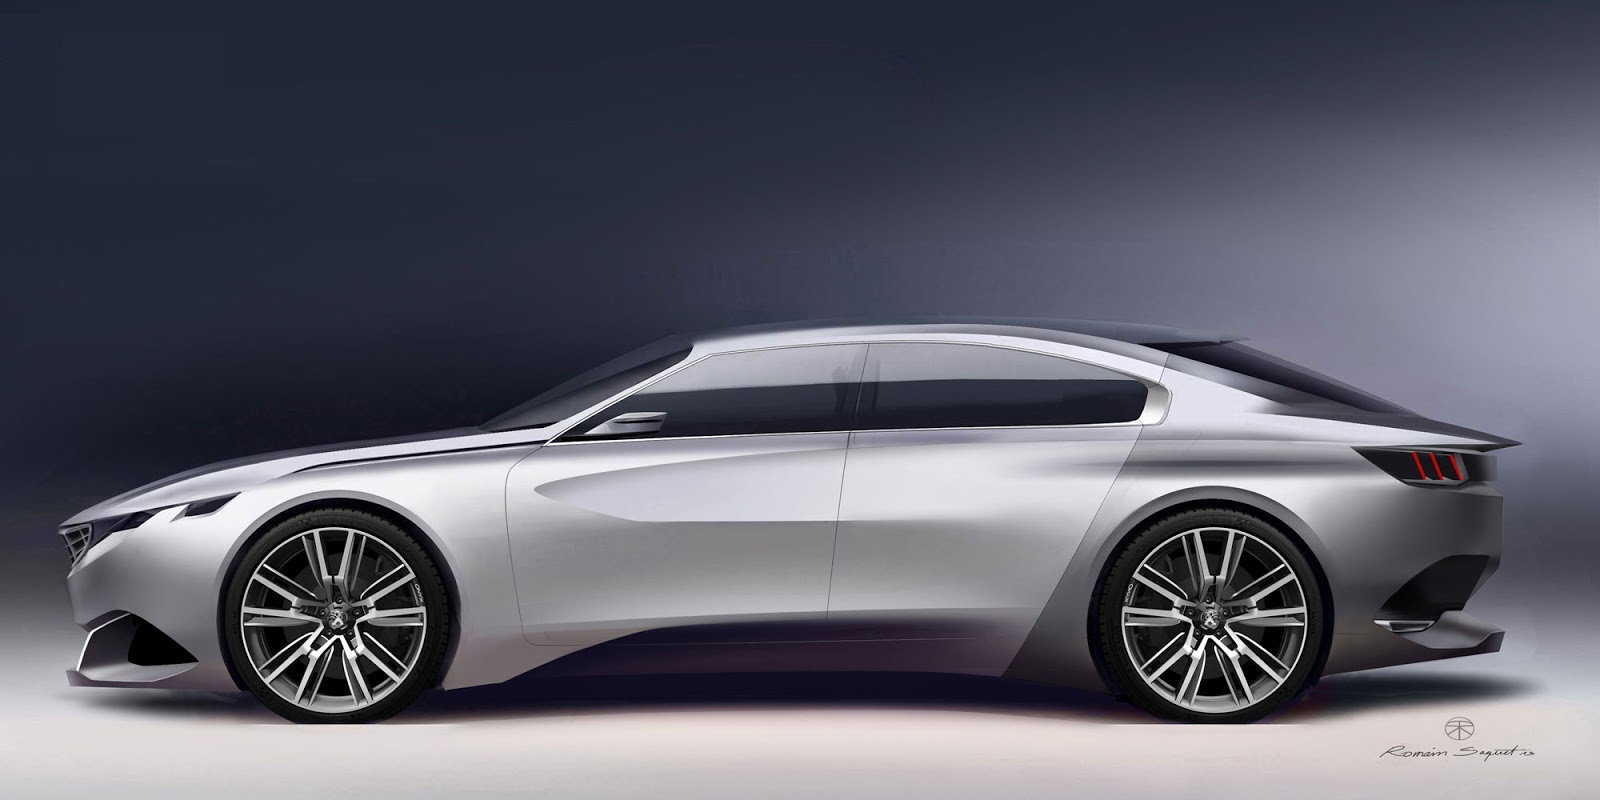 Peugeot Exalt concept side view, render by Romain Saquet